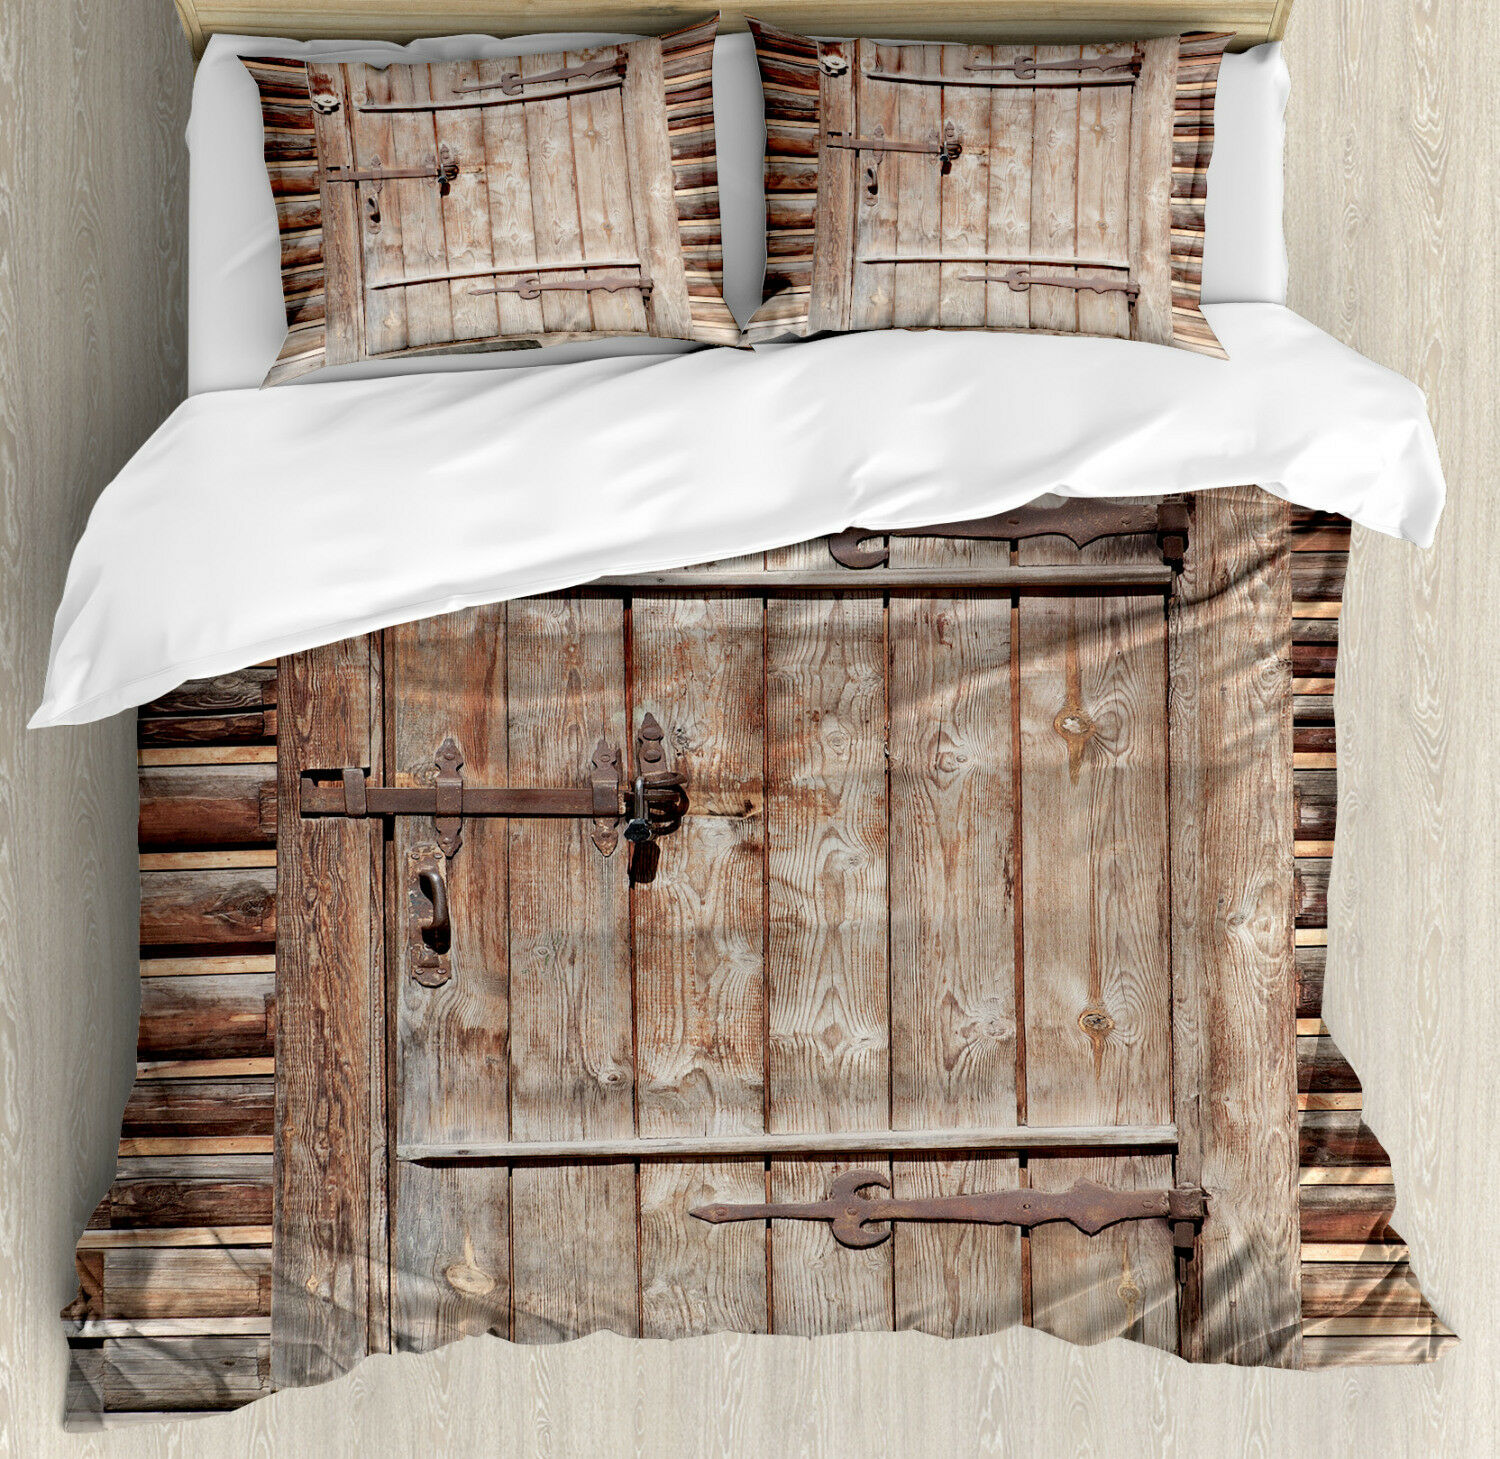 Rustic Duvet Cover Set with Pillow Shams Timber Door Log House Print